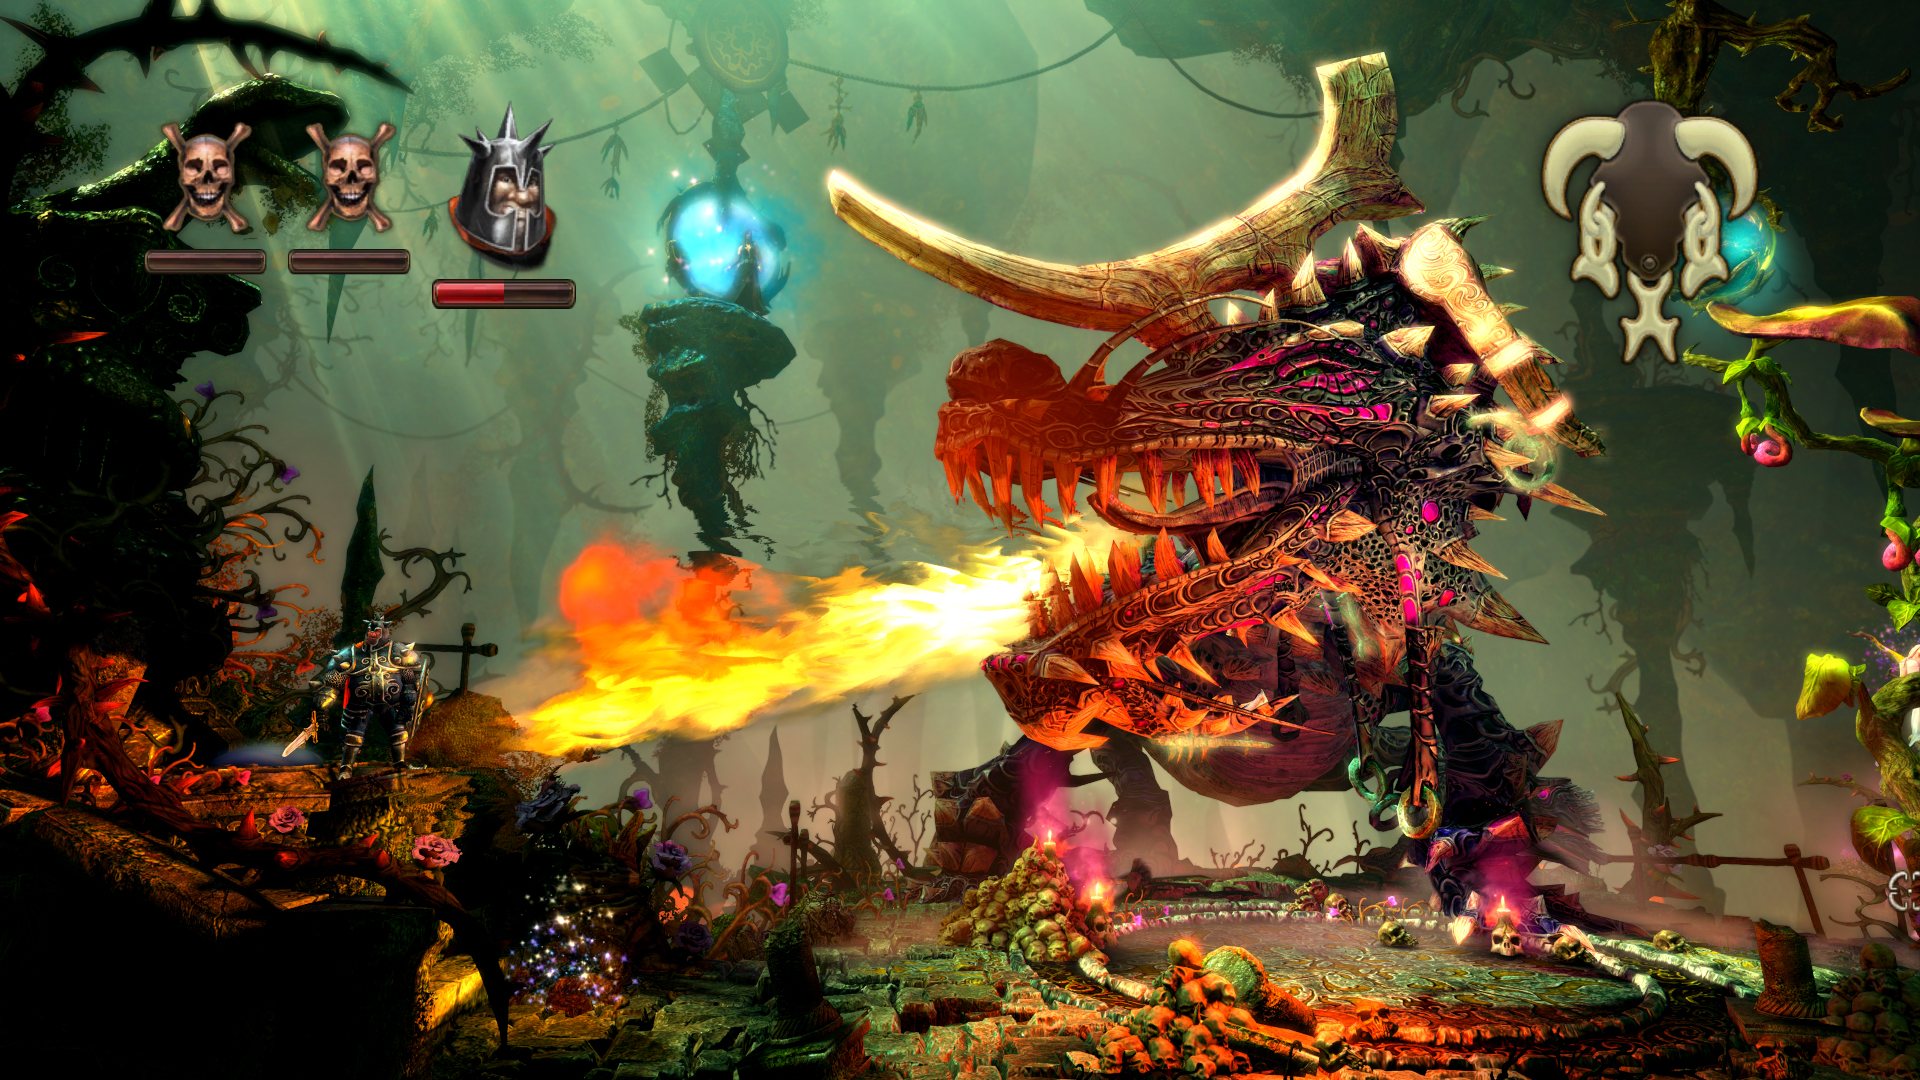 When I first booted up Trine 2, I was taken aback by how gorgeous the visuals were. The environments are wildly varied and bursting with detail and ...